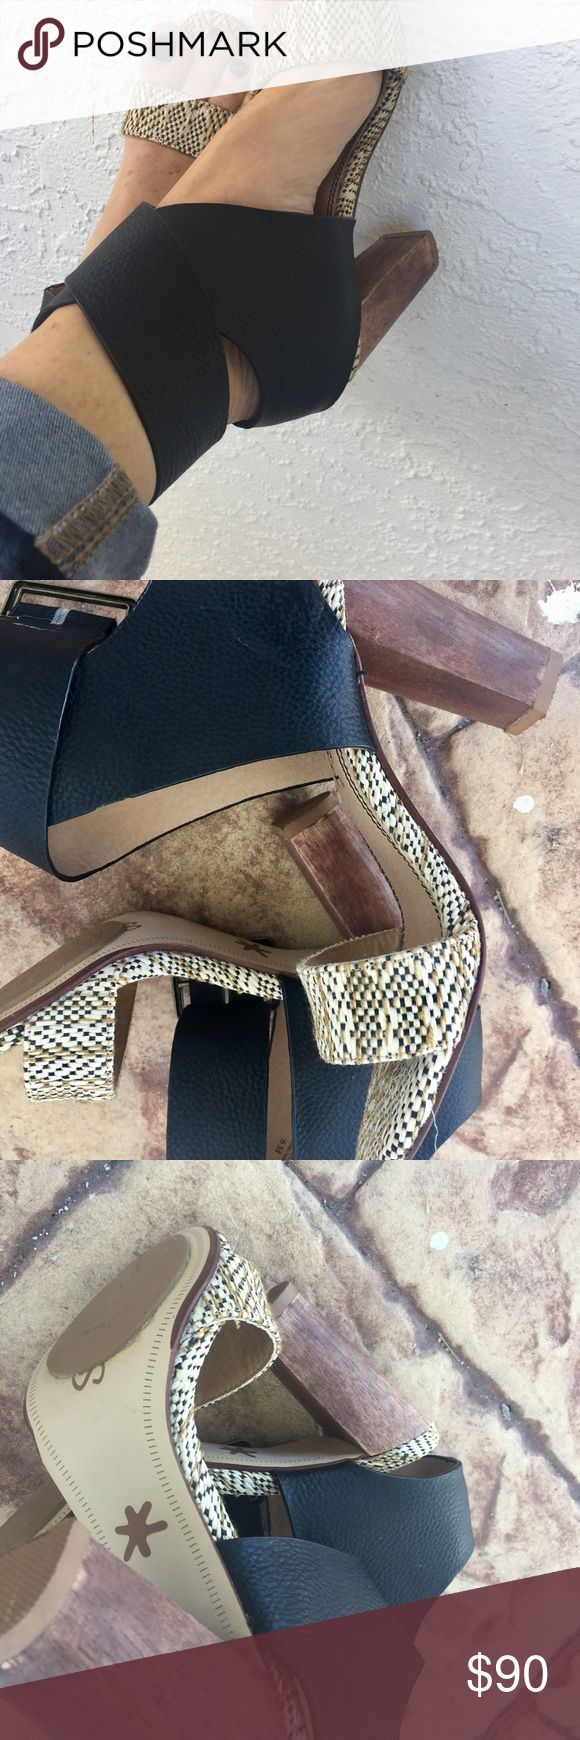 """Splendid High Heel Dandal Splendid """"The Jayla"""" Strappy high heel, with over size detail buckle.  I had them cut down at the shoe repair to 3"""" heel I had them add non slip soles.No slipping! Of course I never did wear them. Brand new condition Splendid Shoes Sandals"""